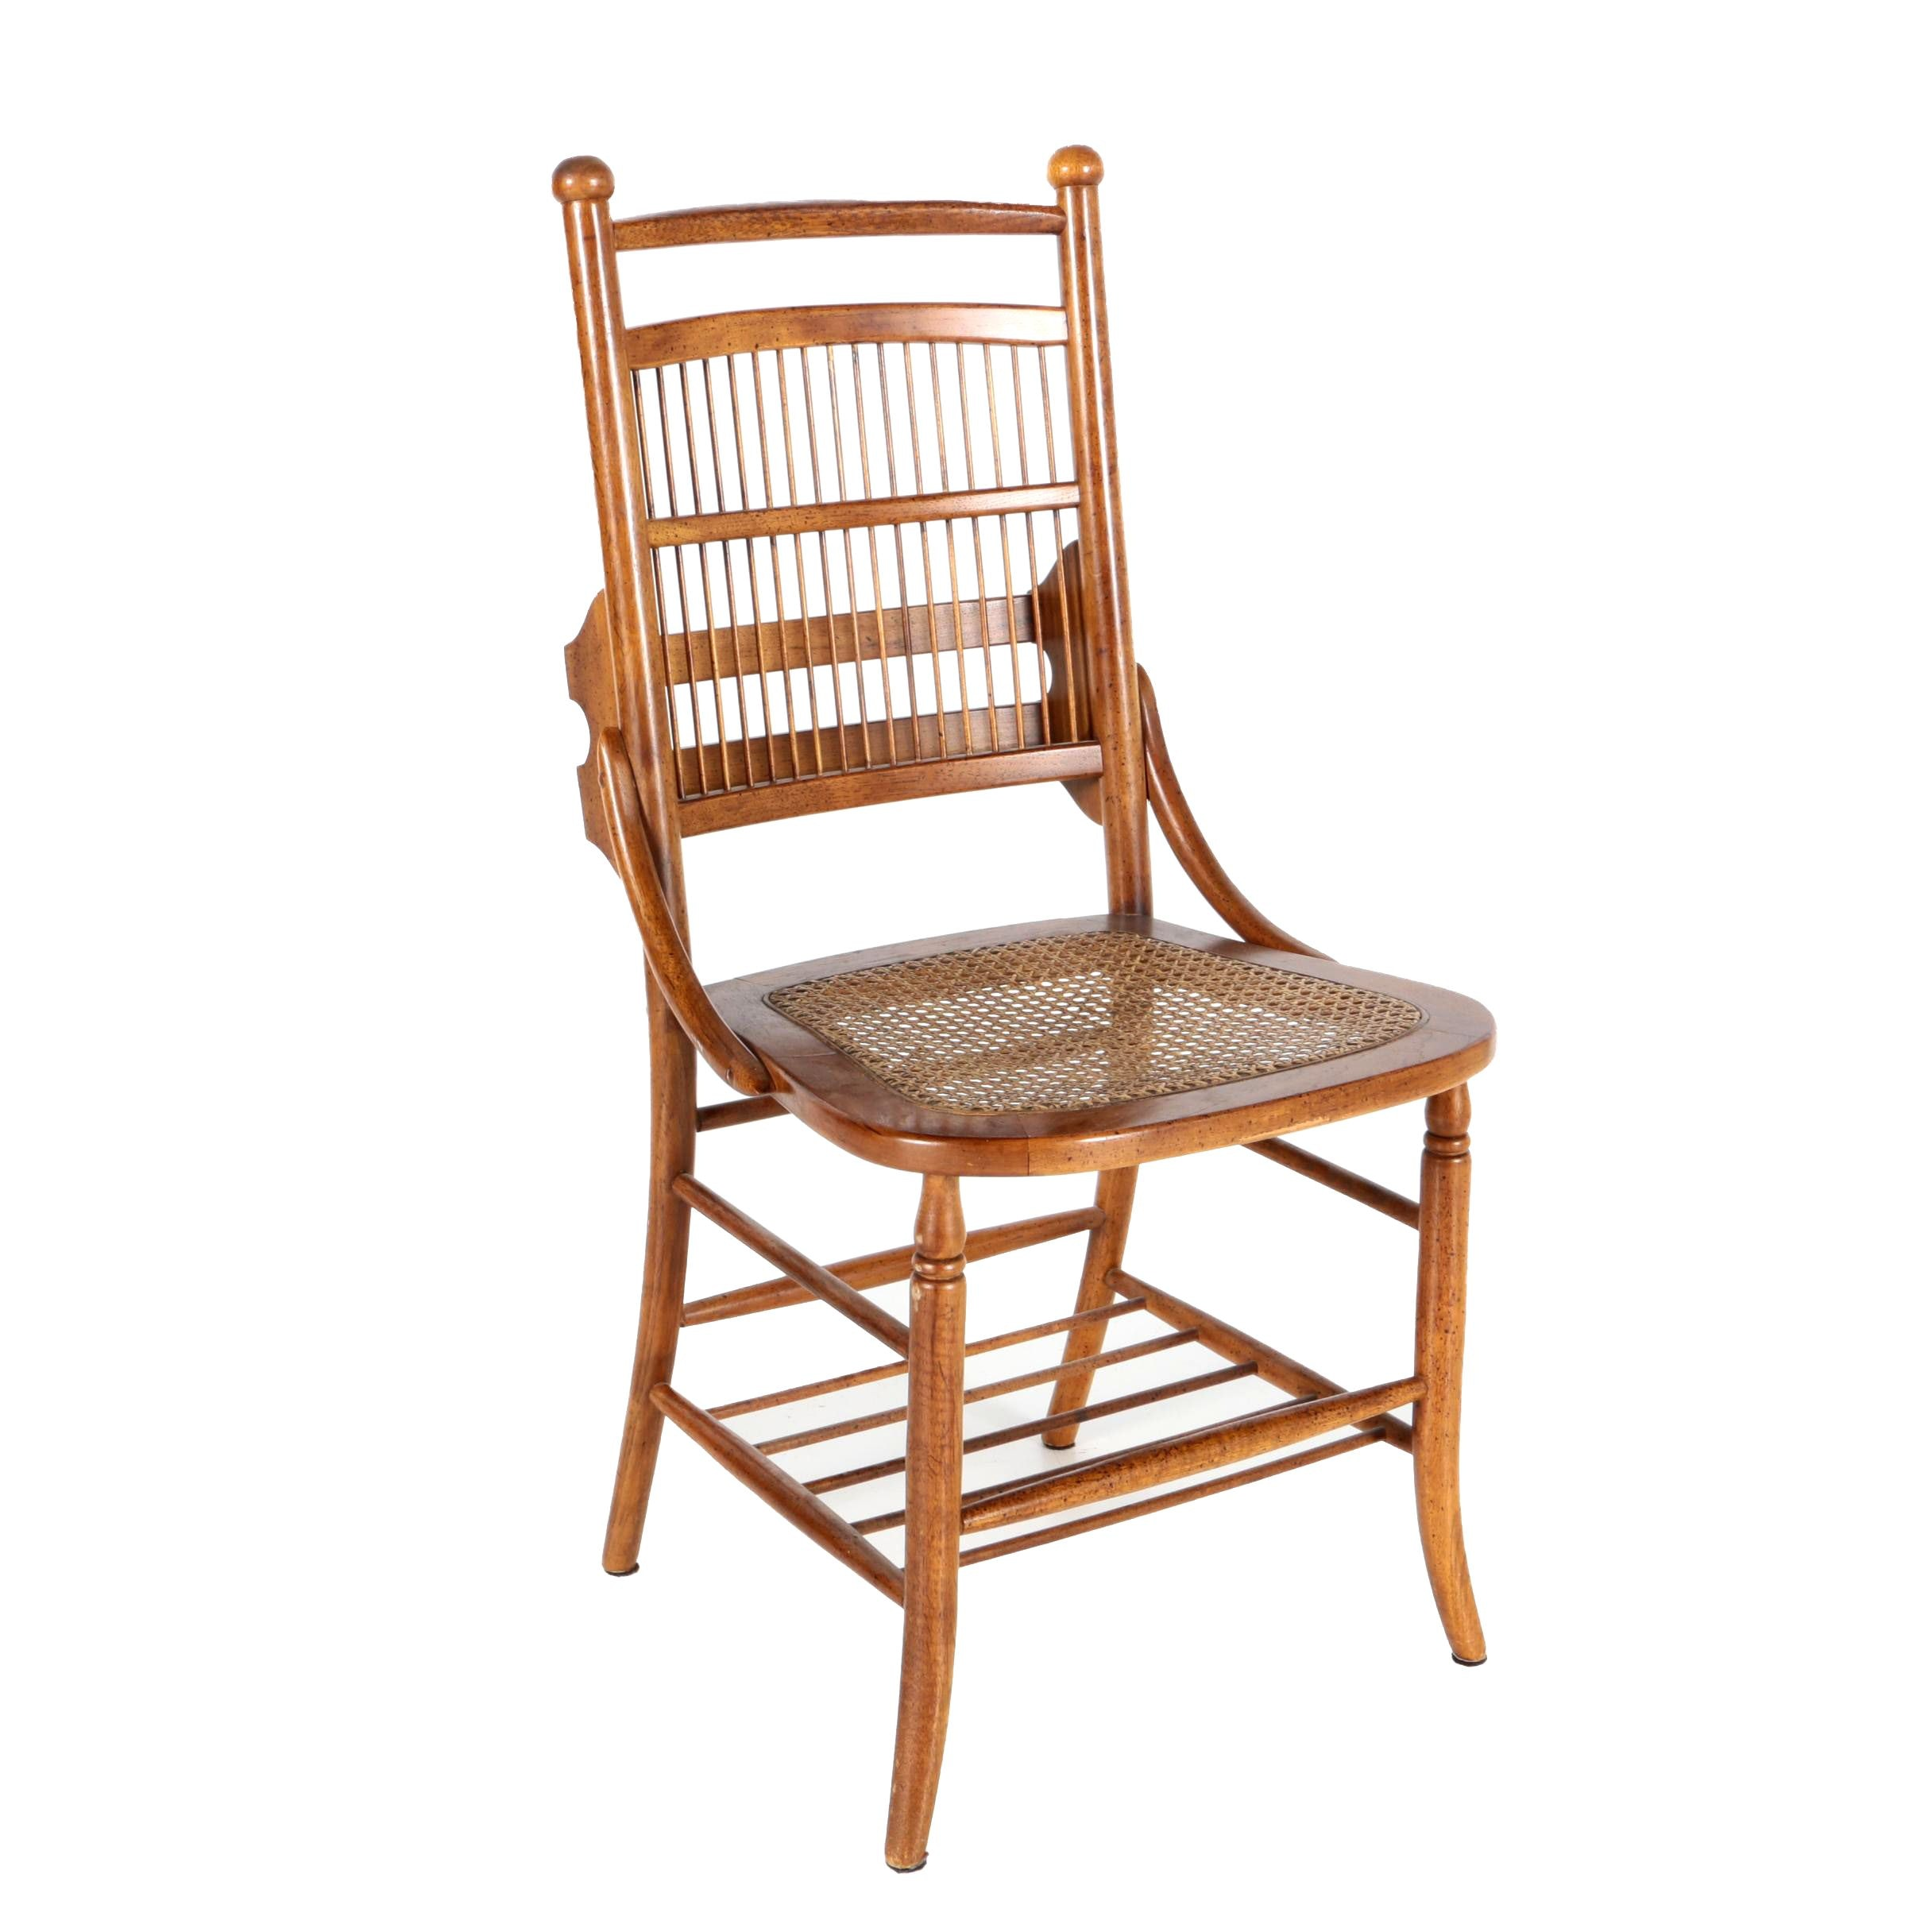 Caned Wooden Chair with Hymnal Rack